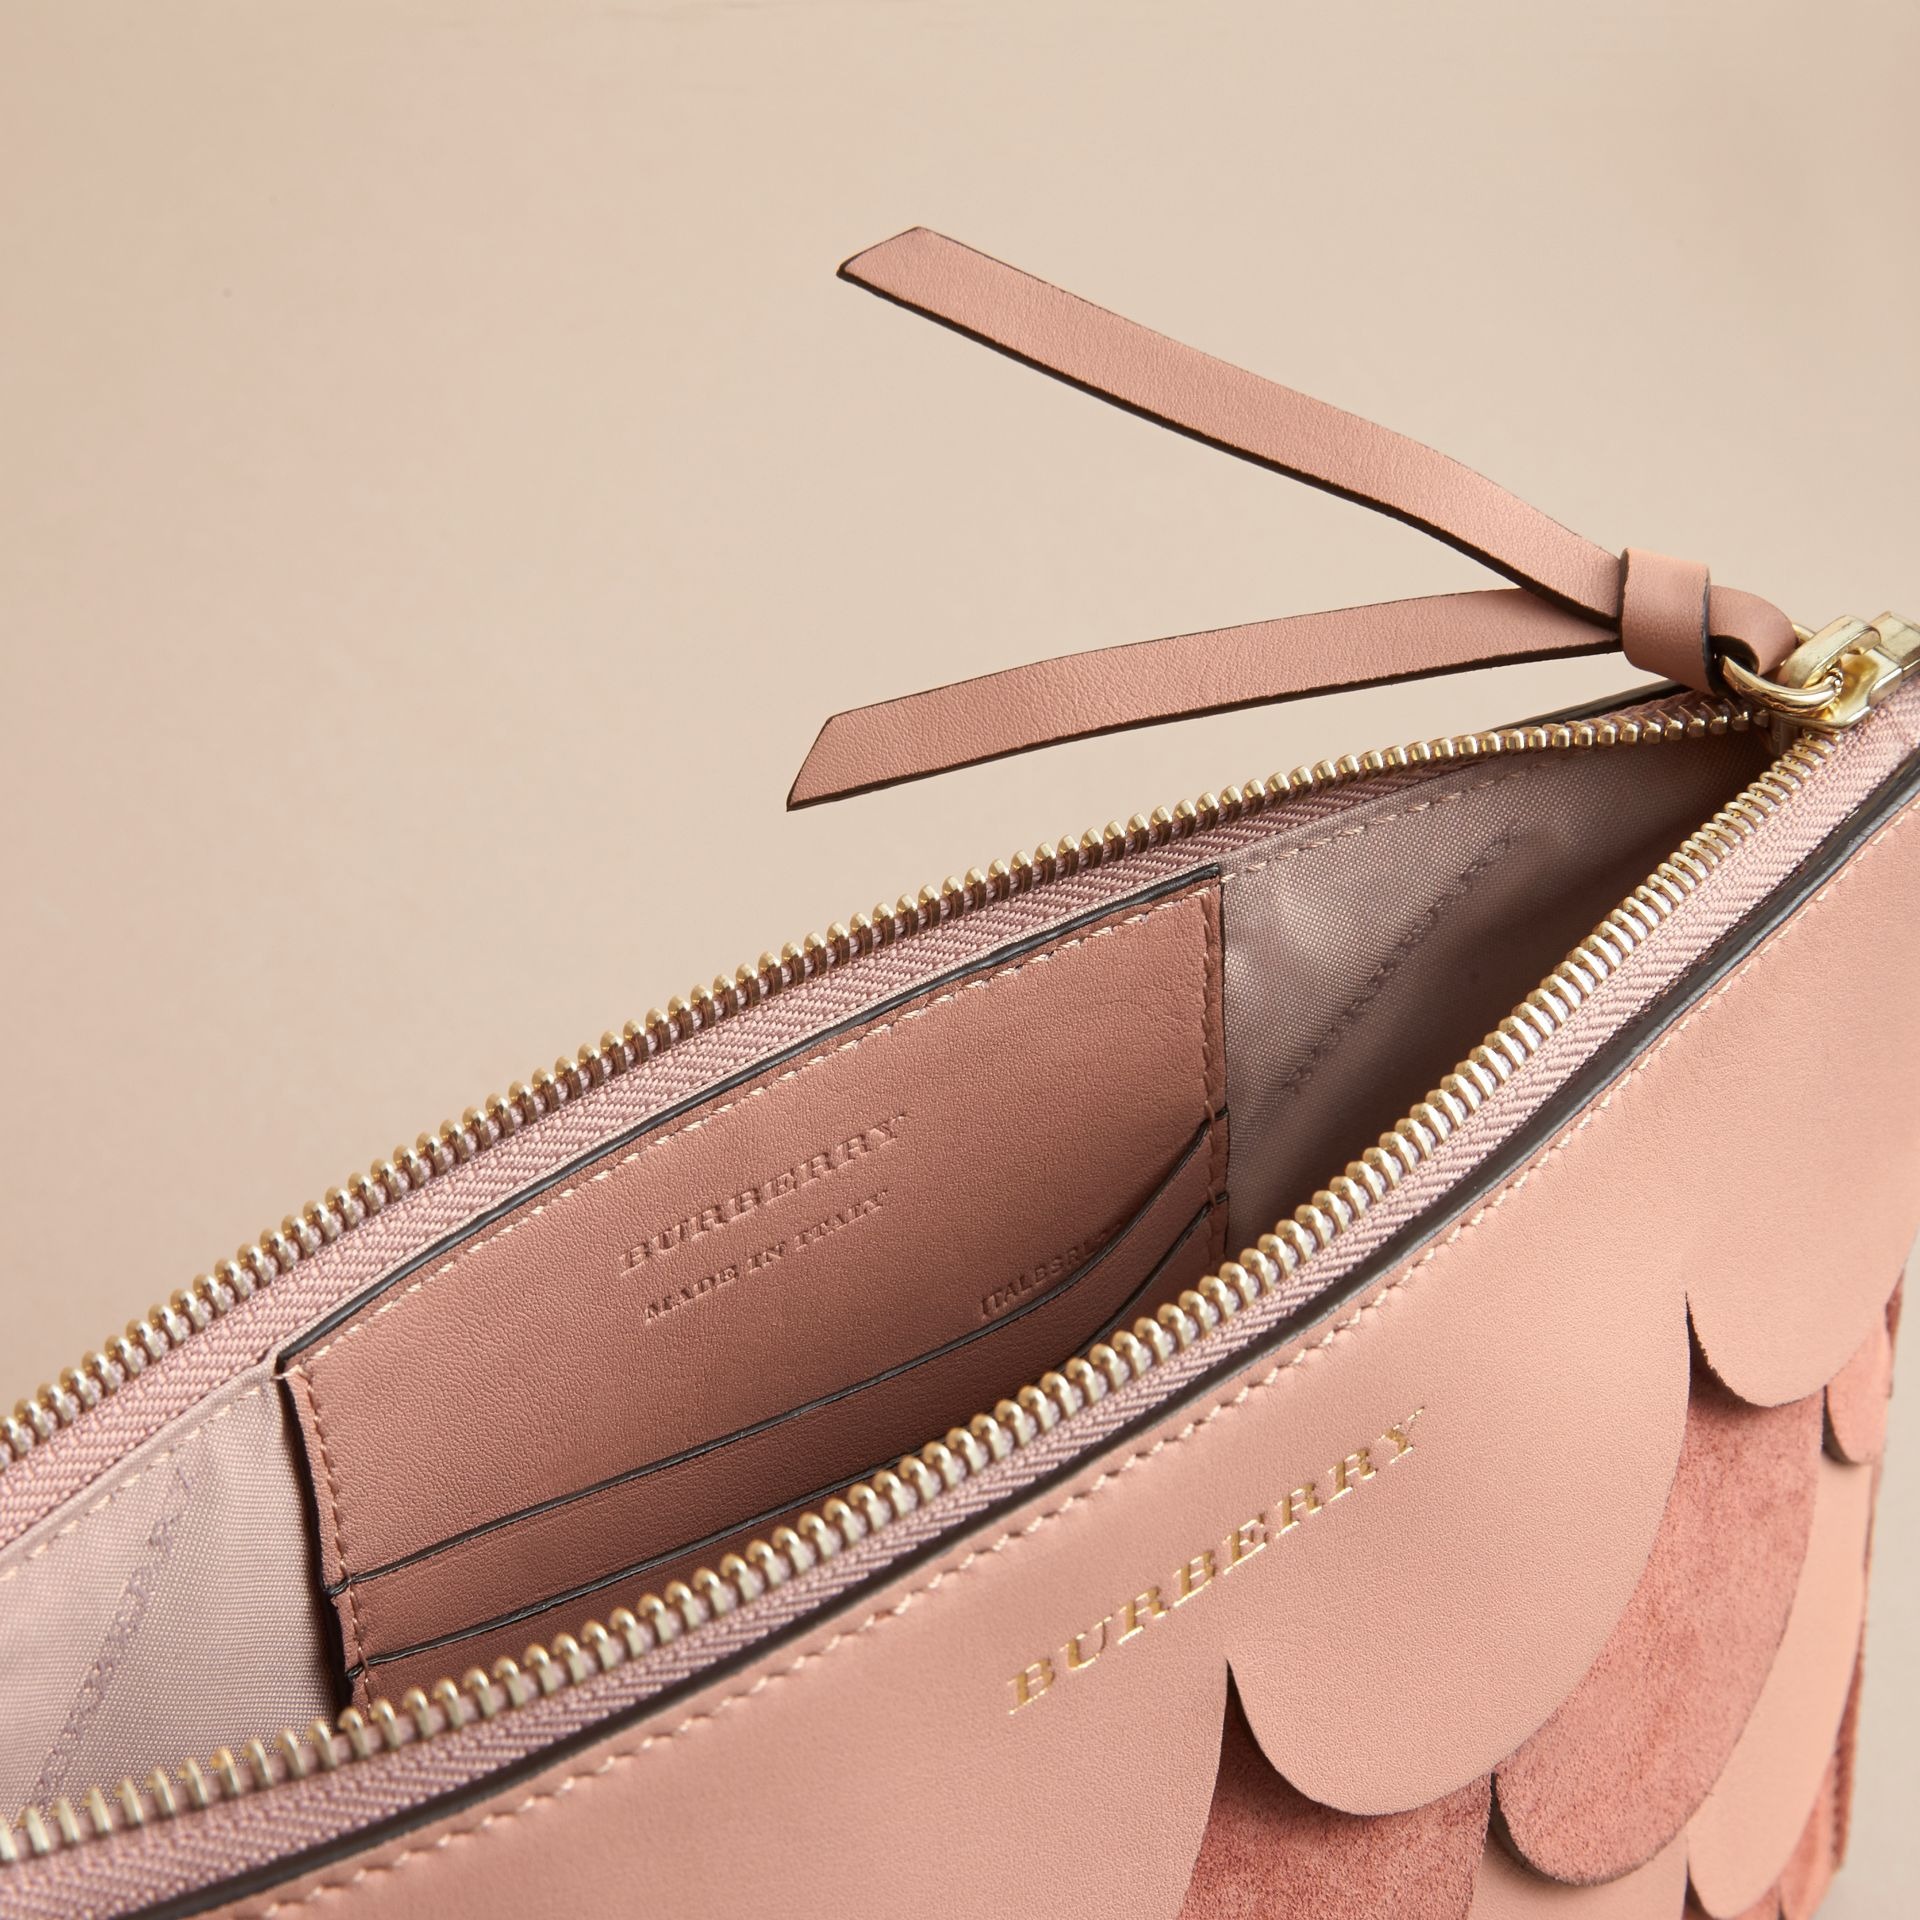 Two-tone Scalloped Leather and Suede Clutch Bag in Ash Rose - Women | Burberry Australia - gallery image 6